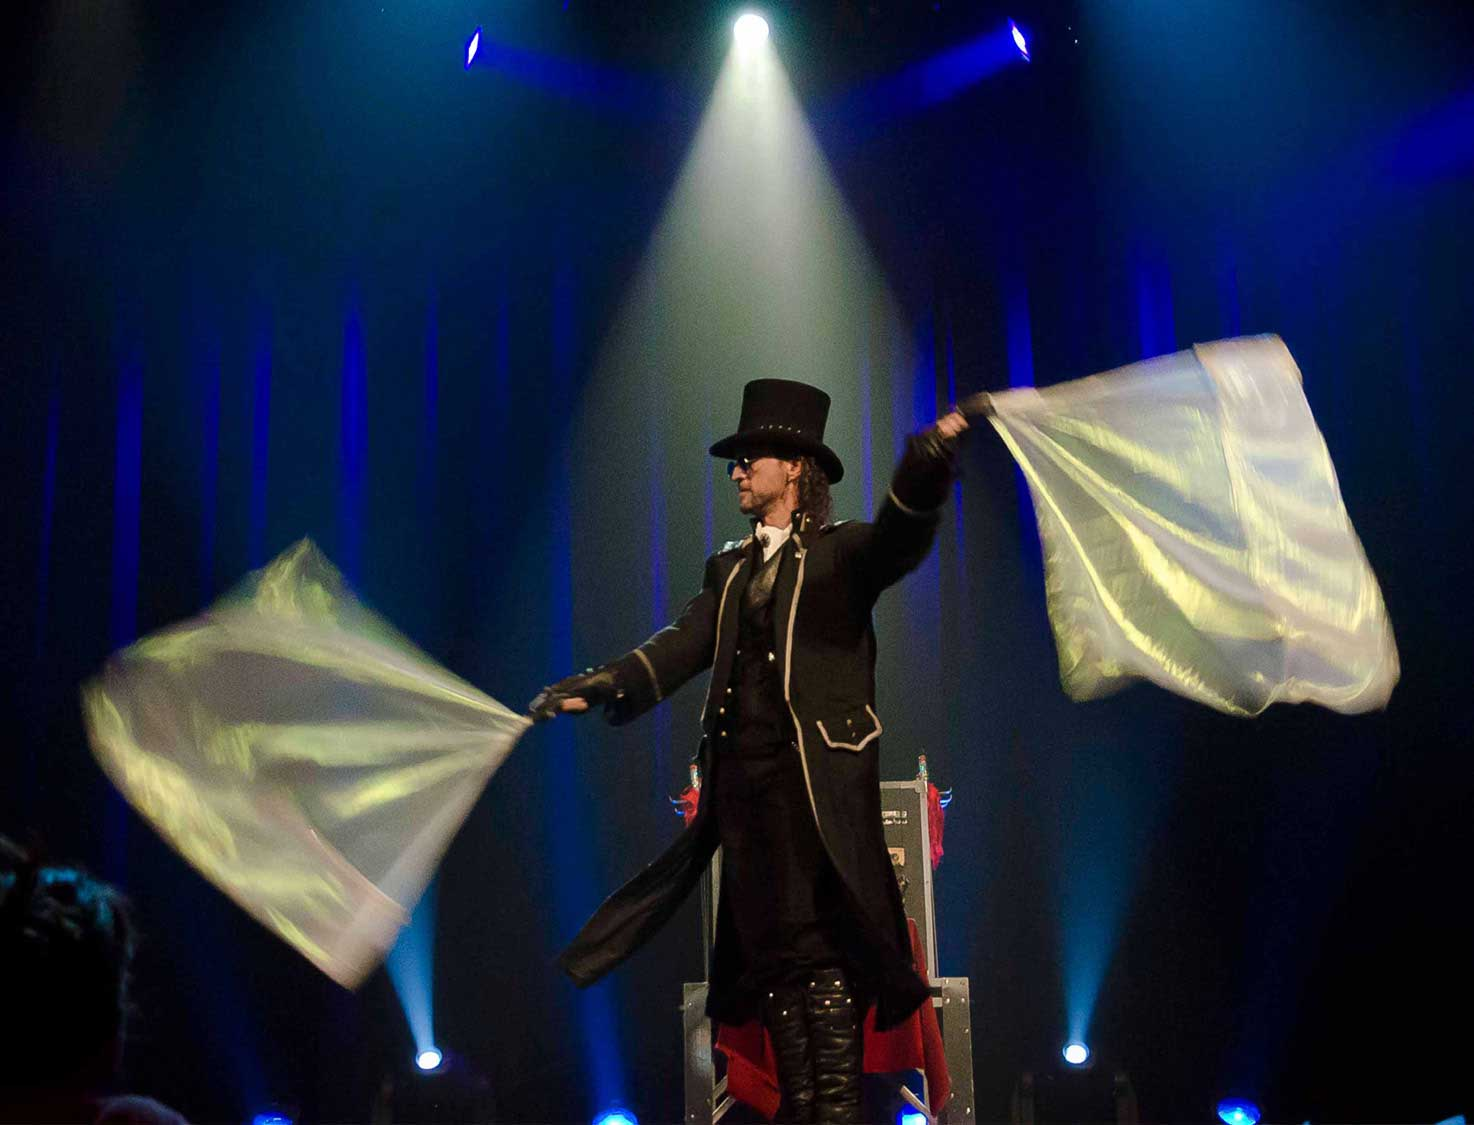 Videos and photos of Loran the illusionist on the stage